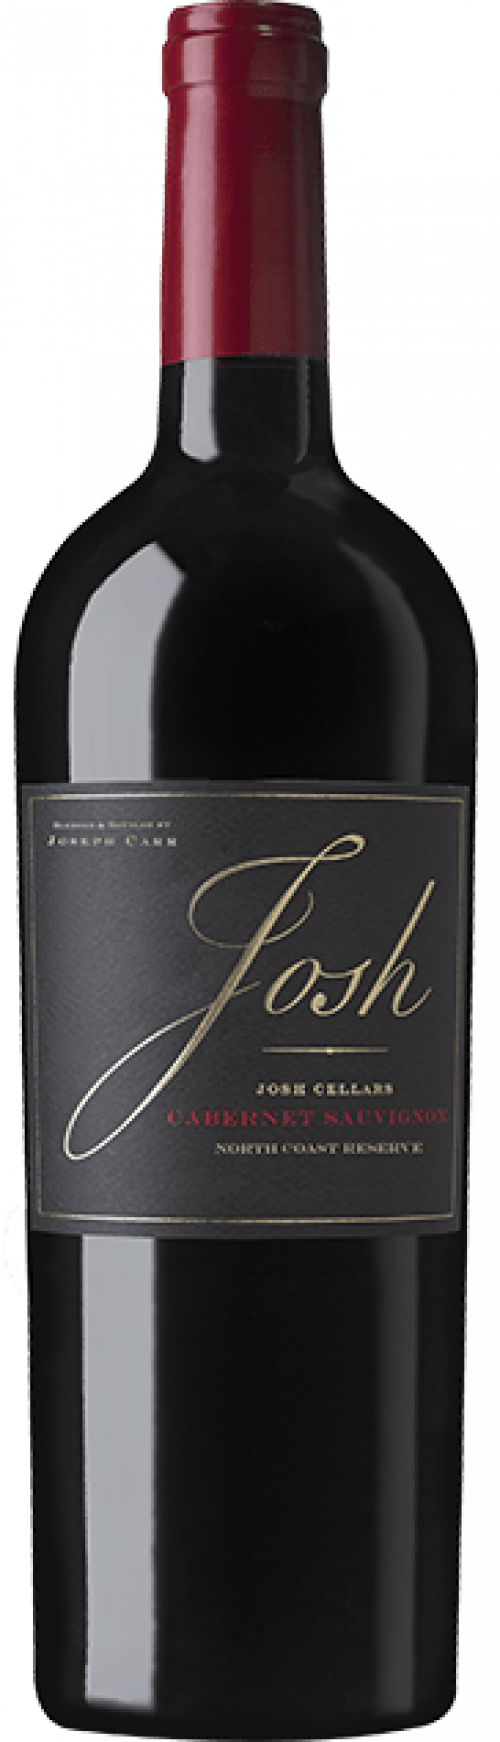 2016 Josh Cellars North Coast Cabernet Sauvignon 750ml